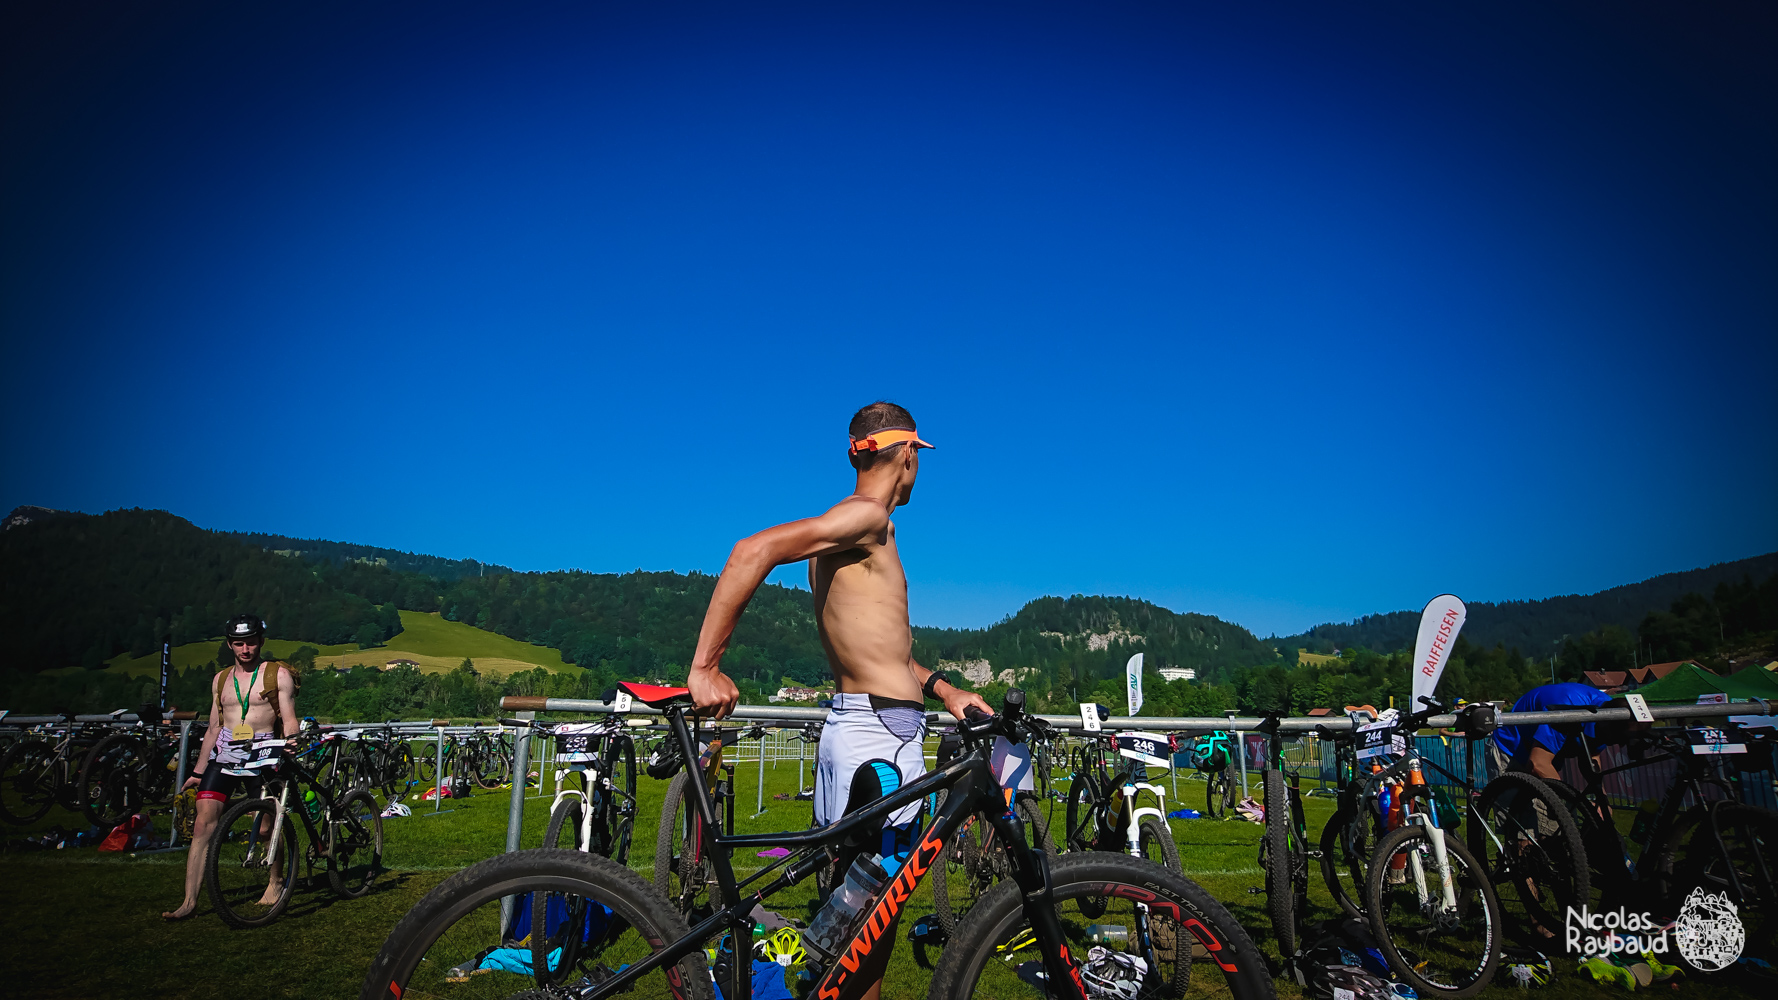 nicolas raybaud xterra switzerland